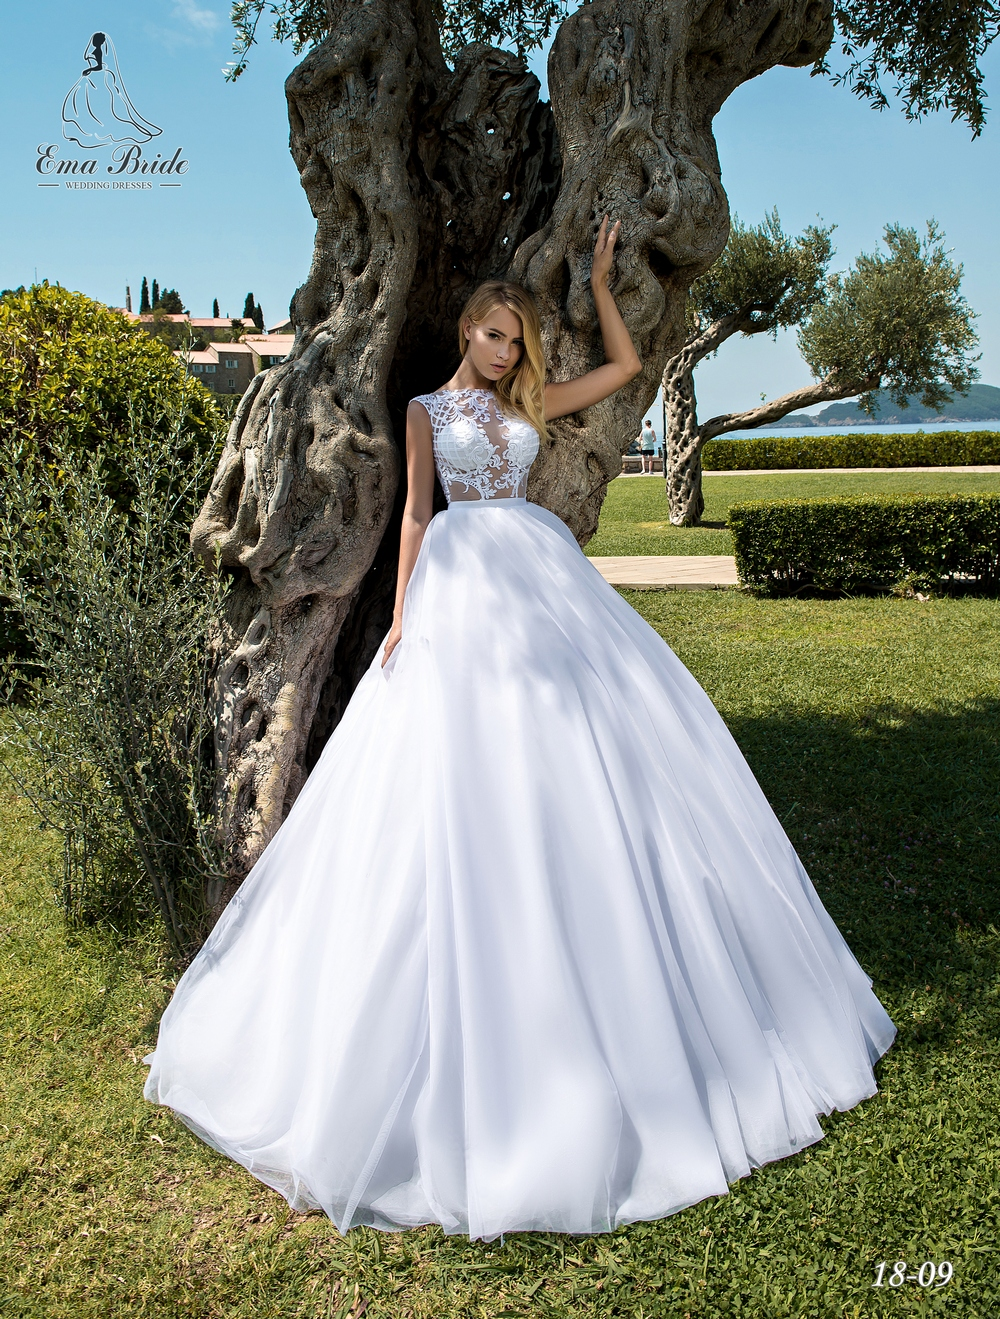 Wedding dress 18-09 wholesale-1